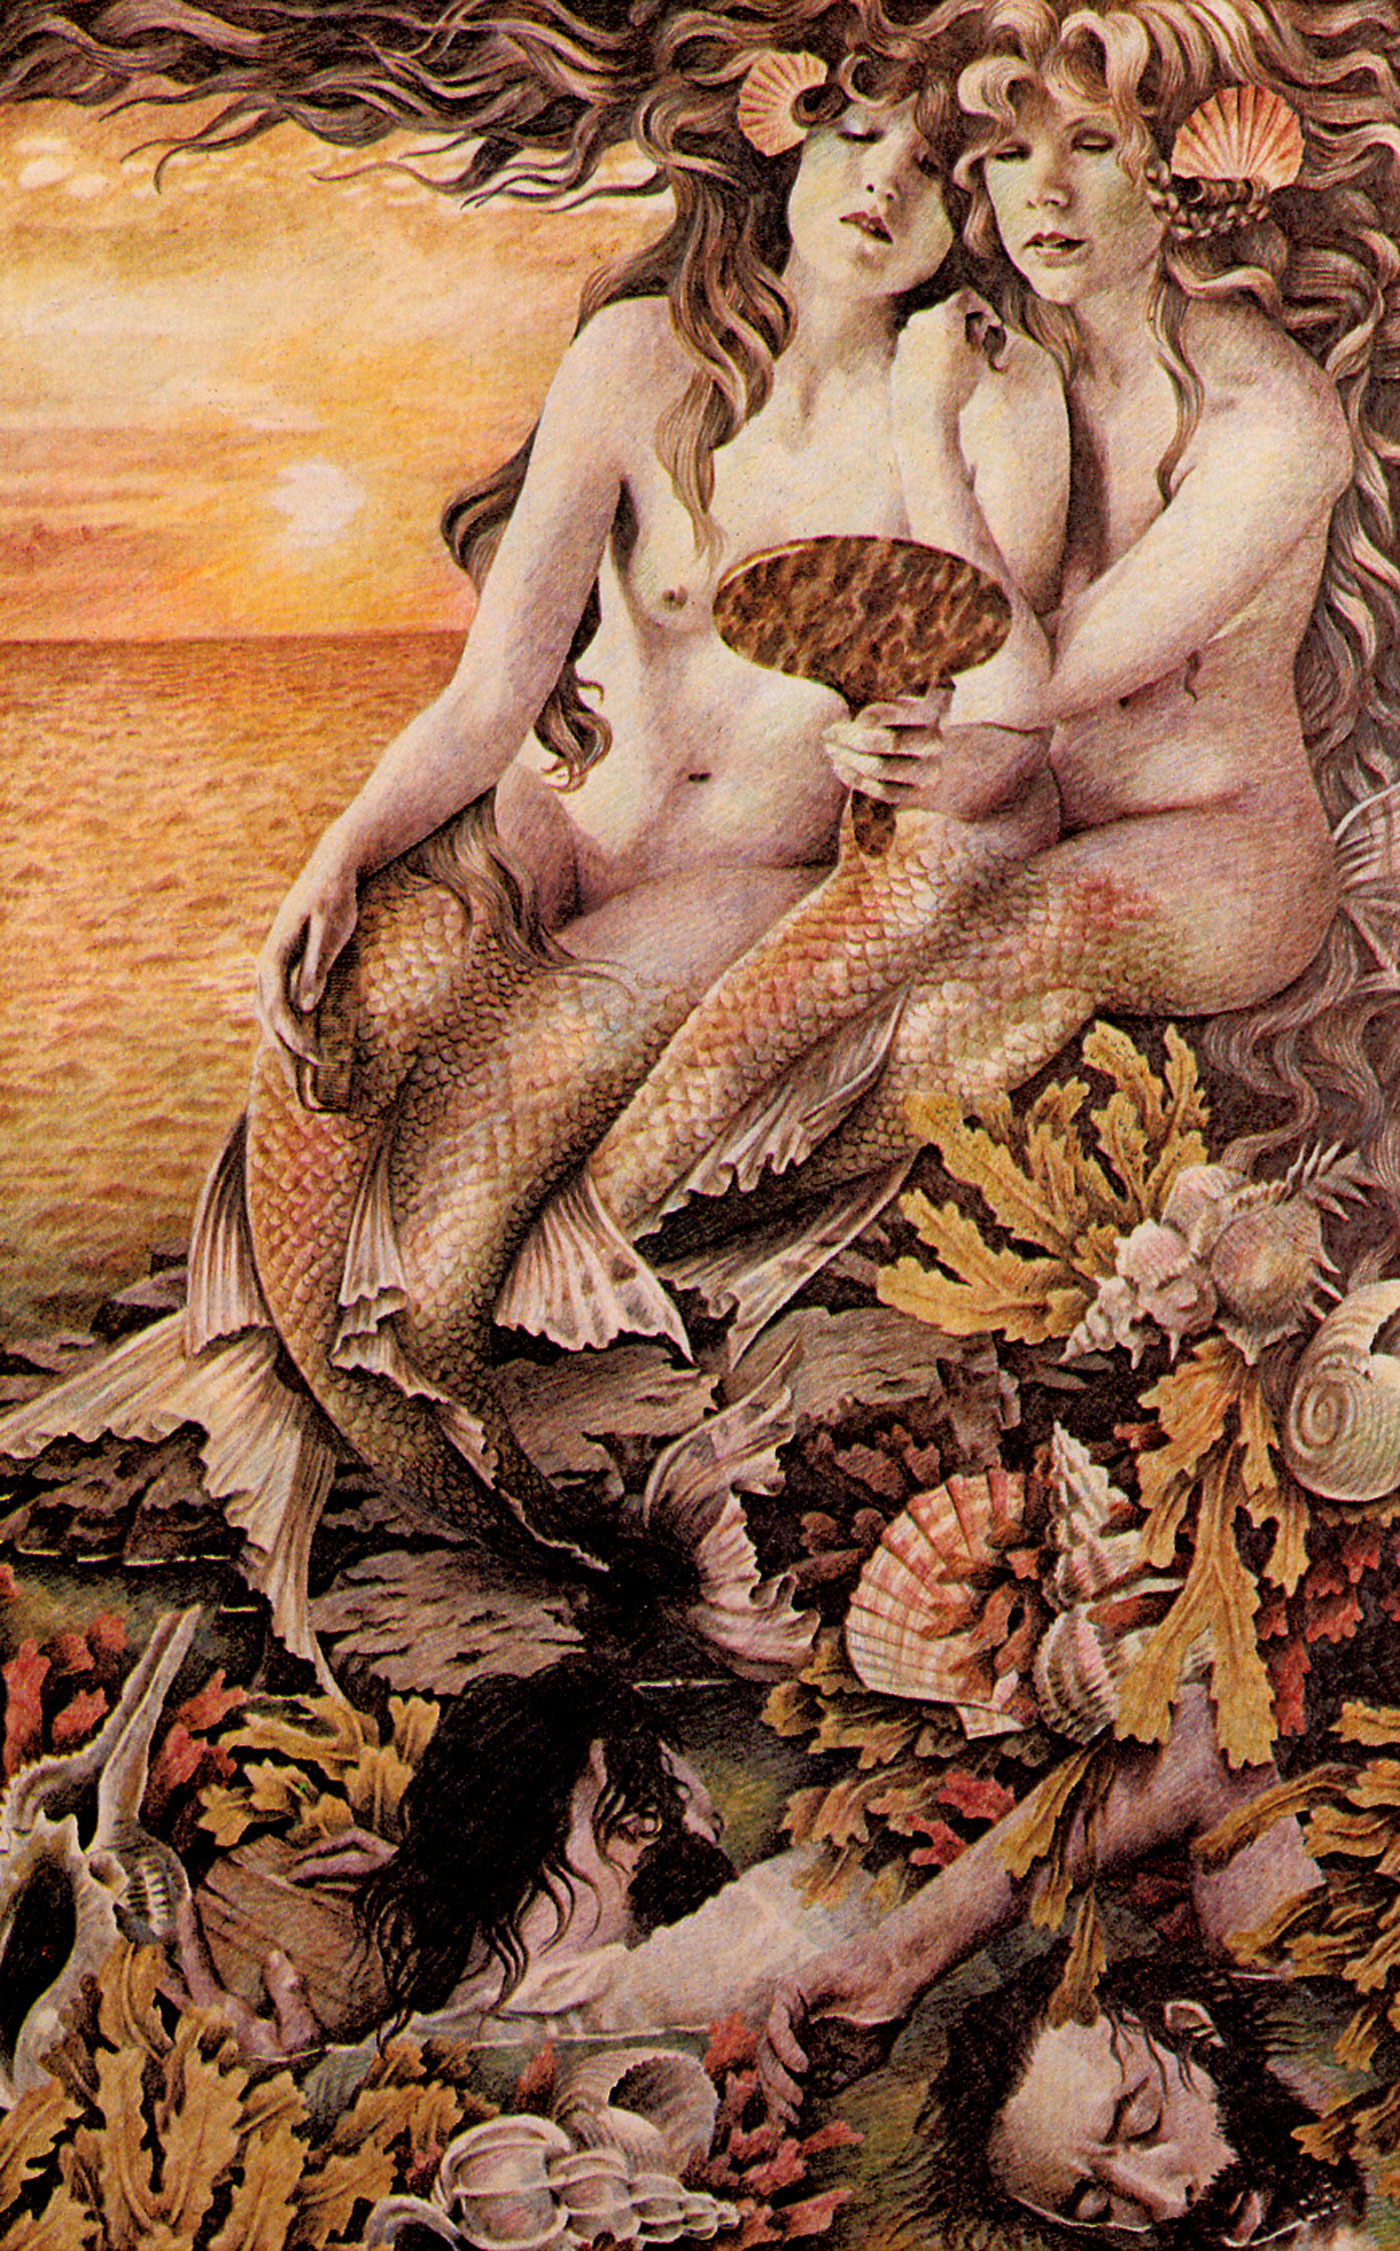 Abbey Lubbers, Banshees and Boggarts (Mermaids)